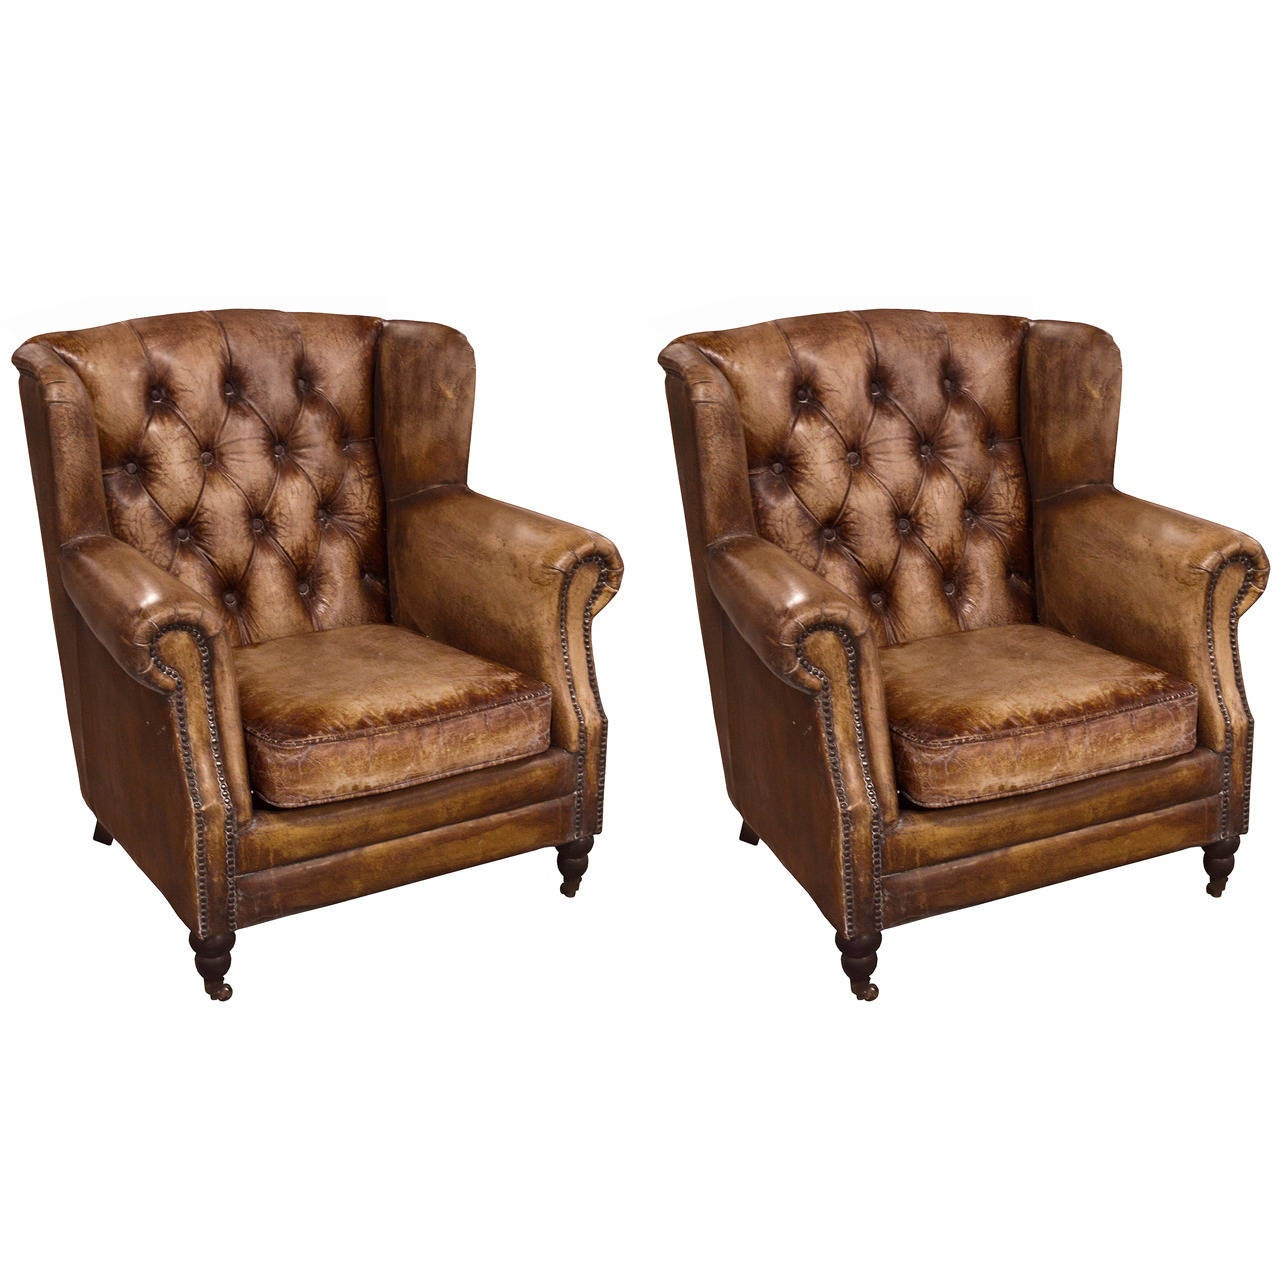 Pair of English Library Chairs with Distressed Leather at ...